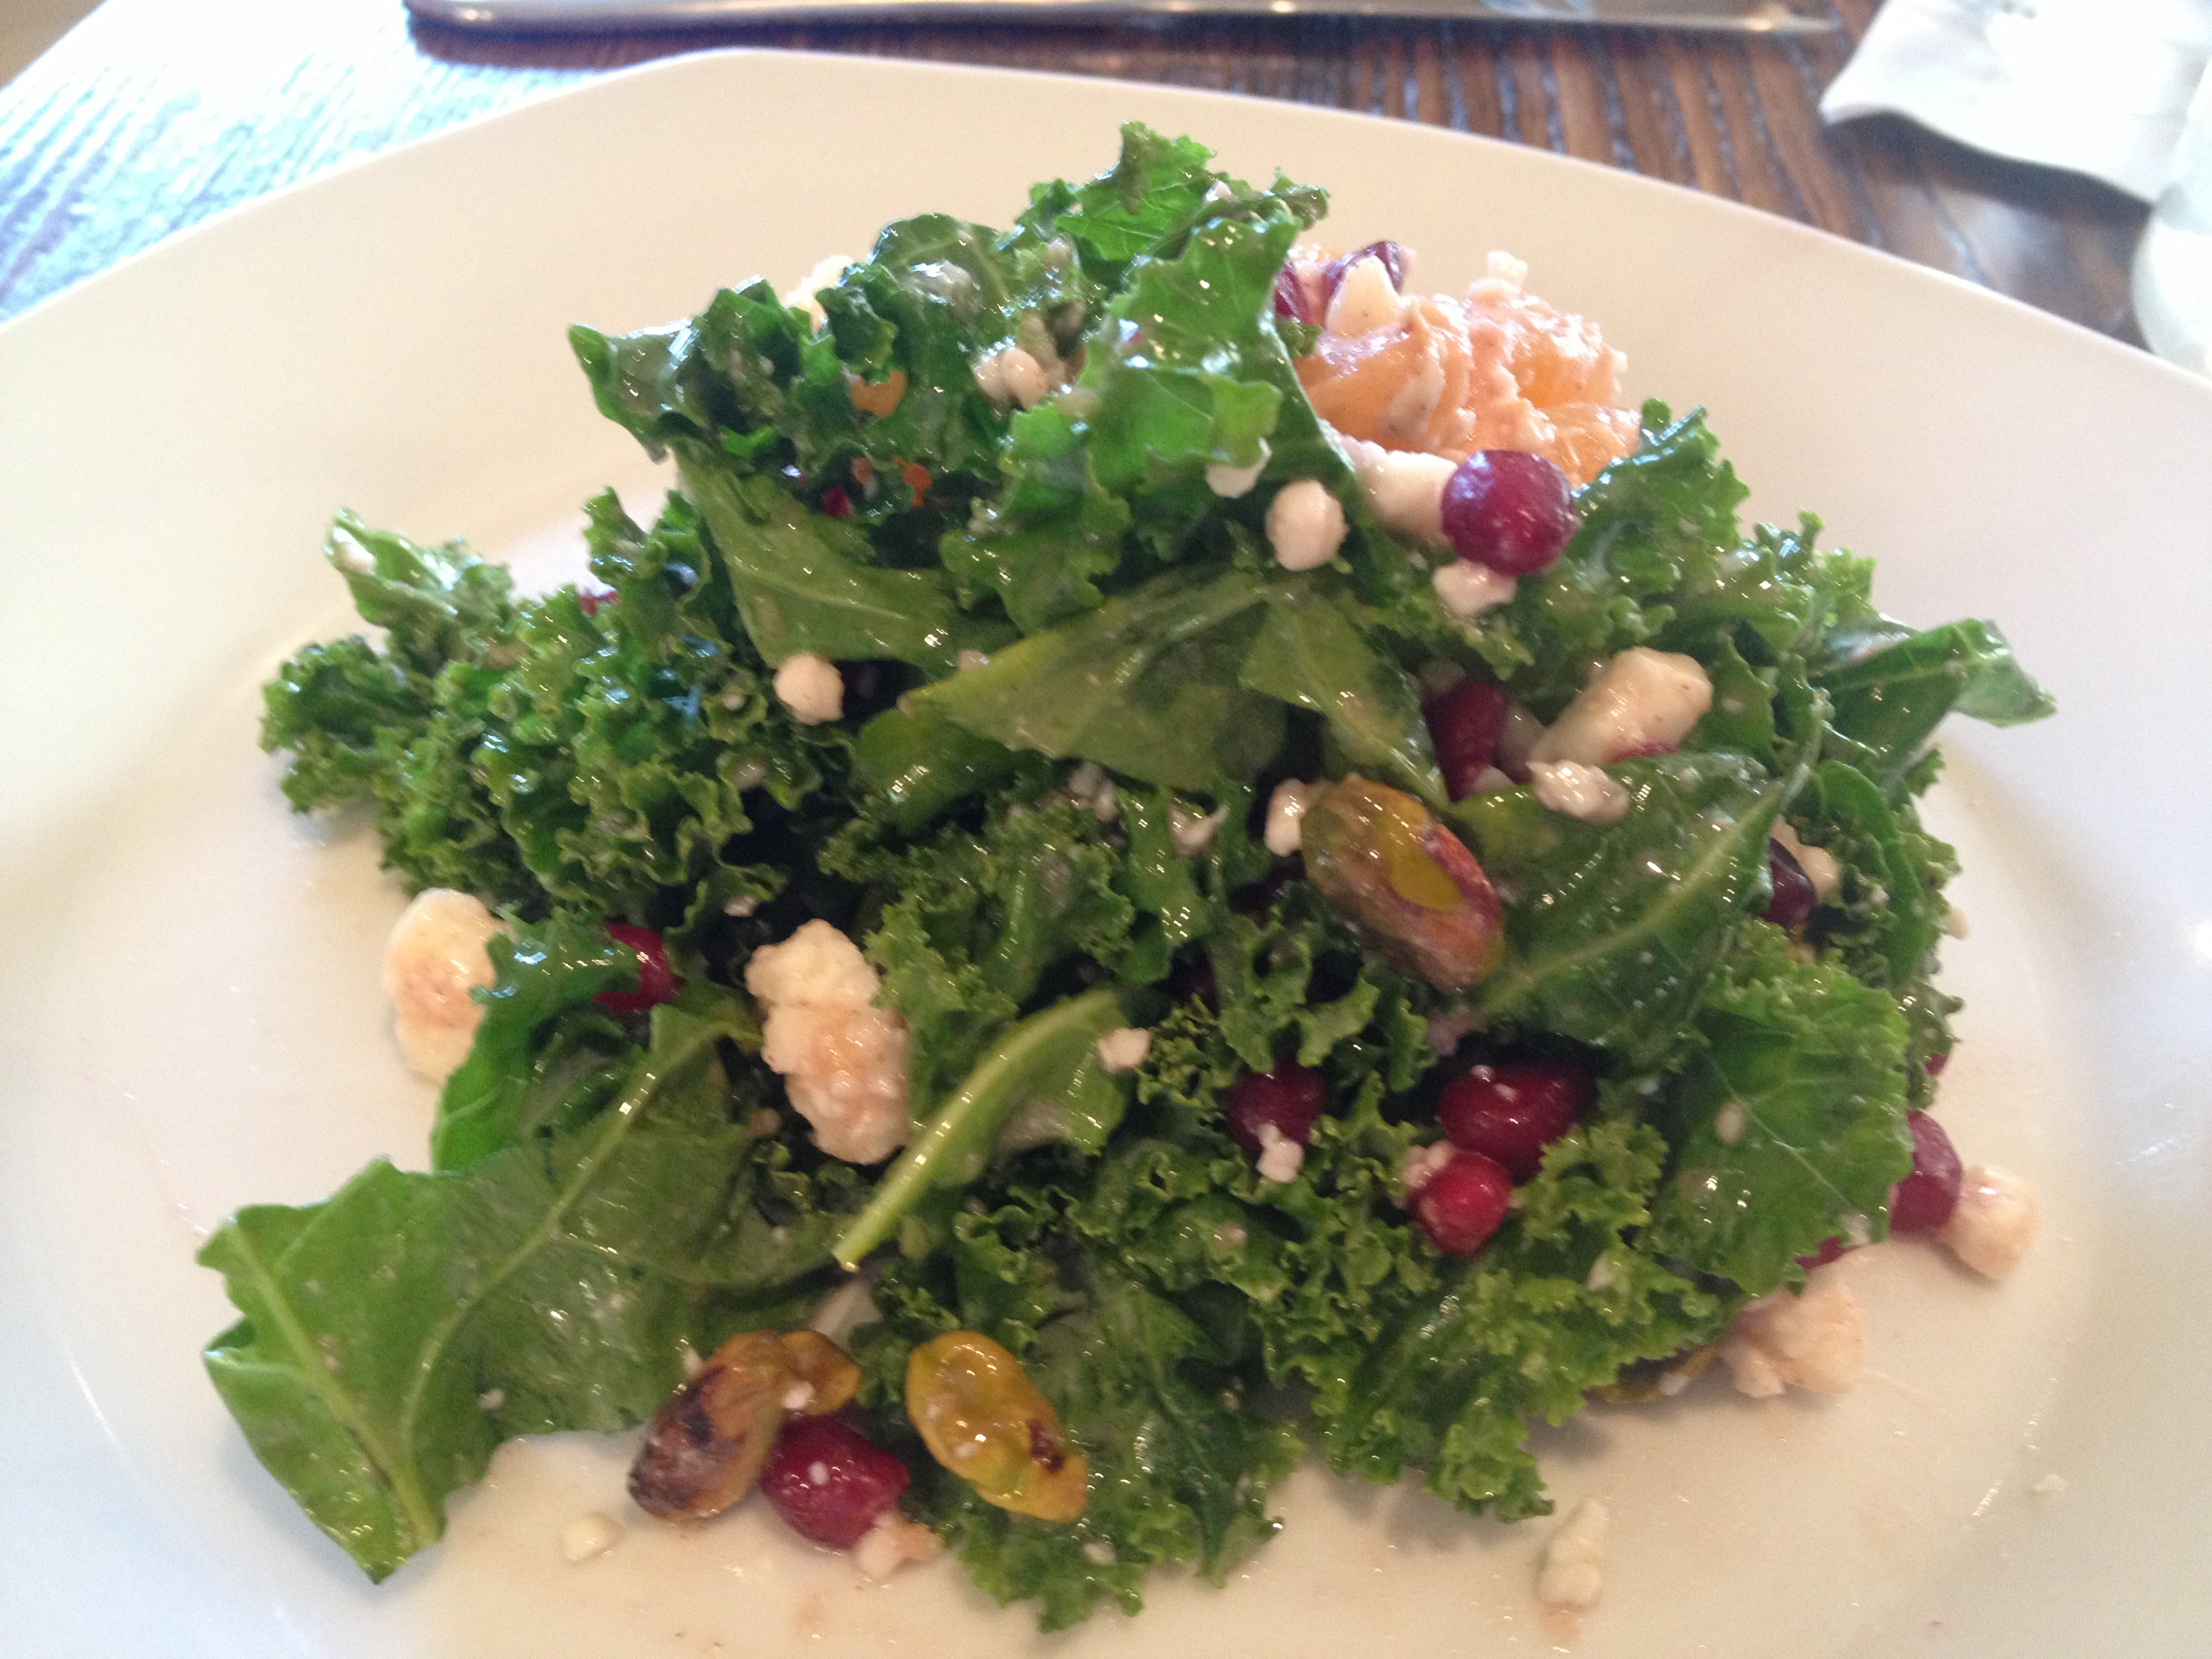 14 Global African clementine and kale salad